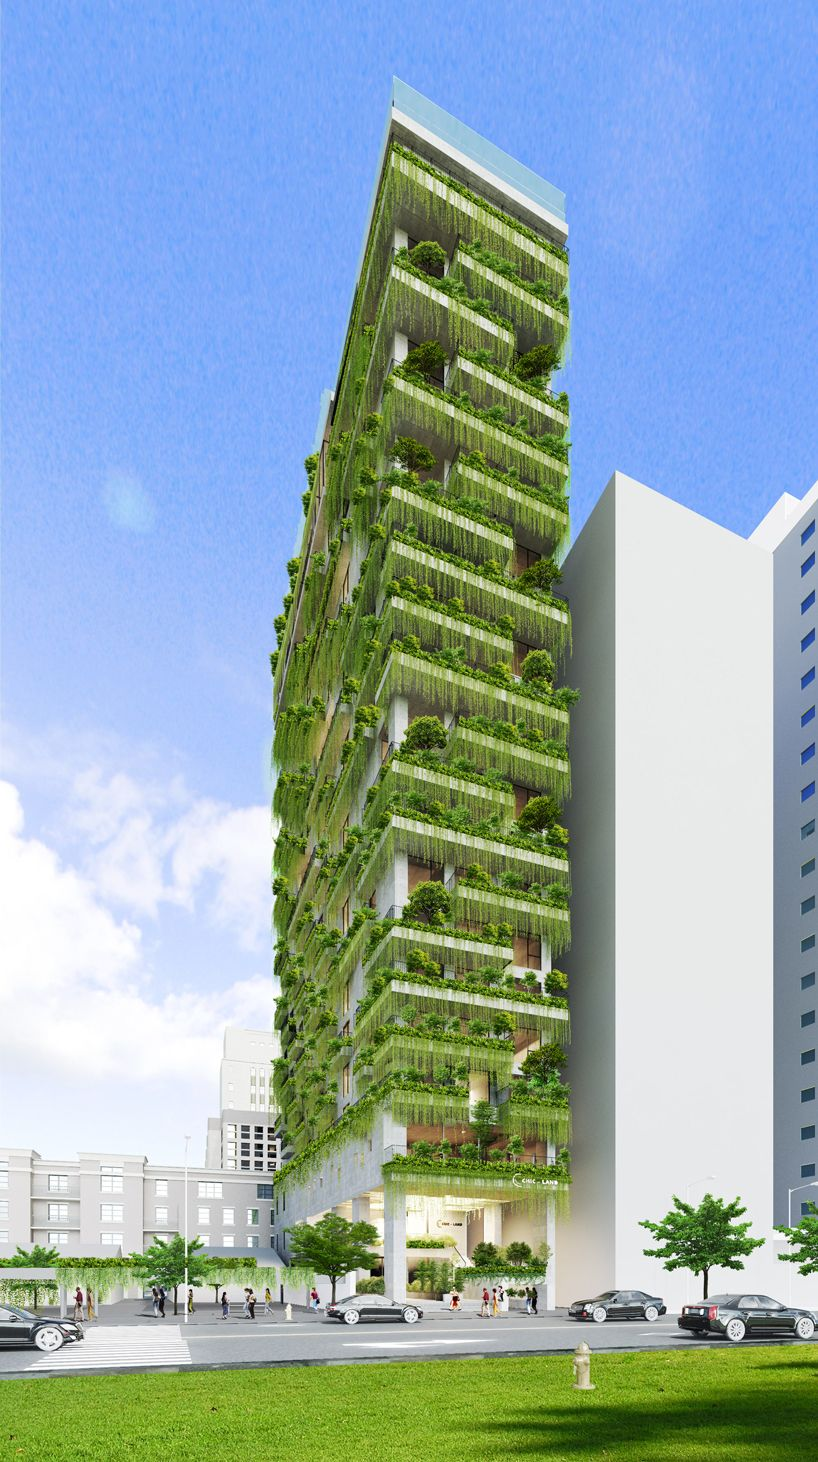 Avis Maison Habitat Concept vo trong nghia plans tropical tower of hanging gardens for